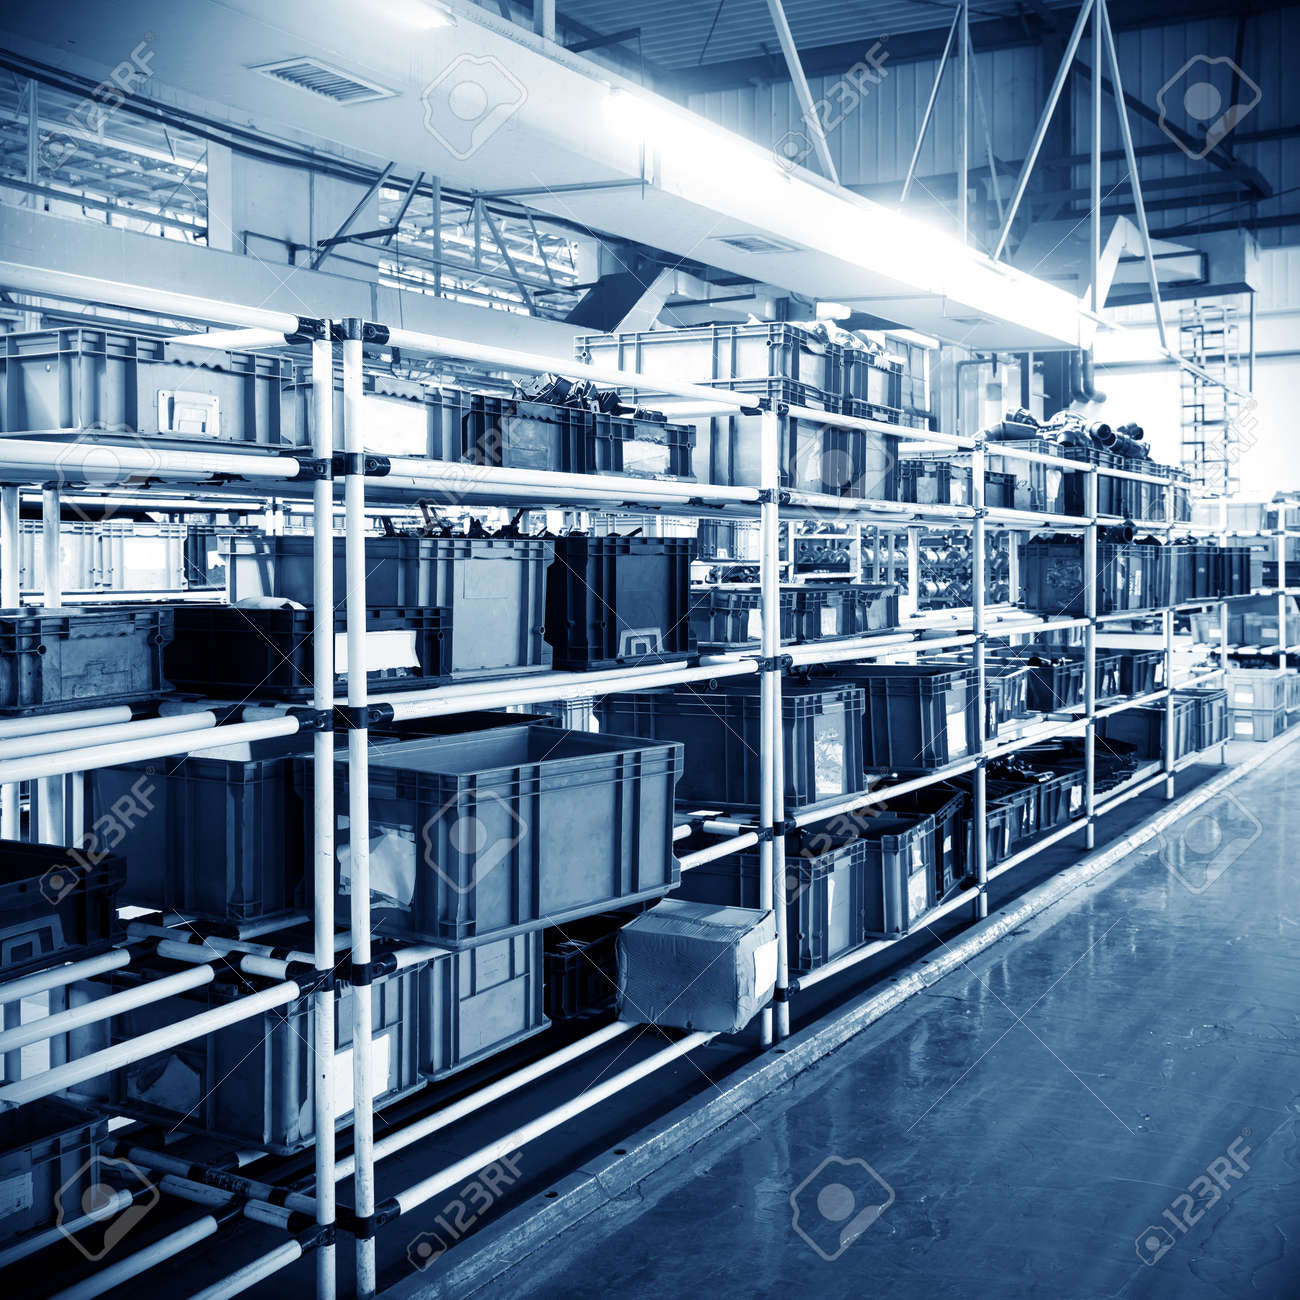 Factory warehouse shelves stocked with plastic containers. - 31890779